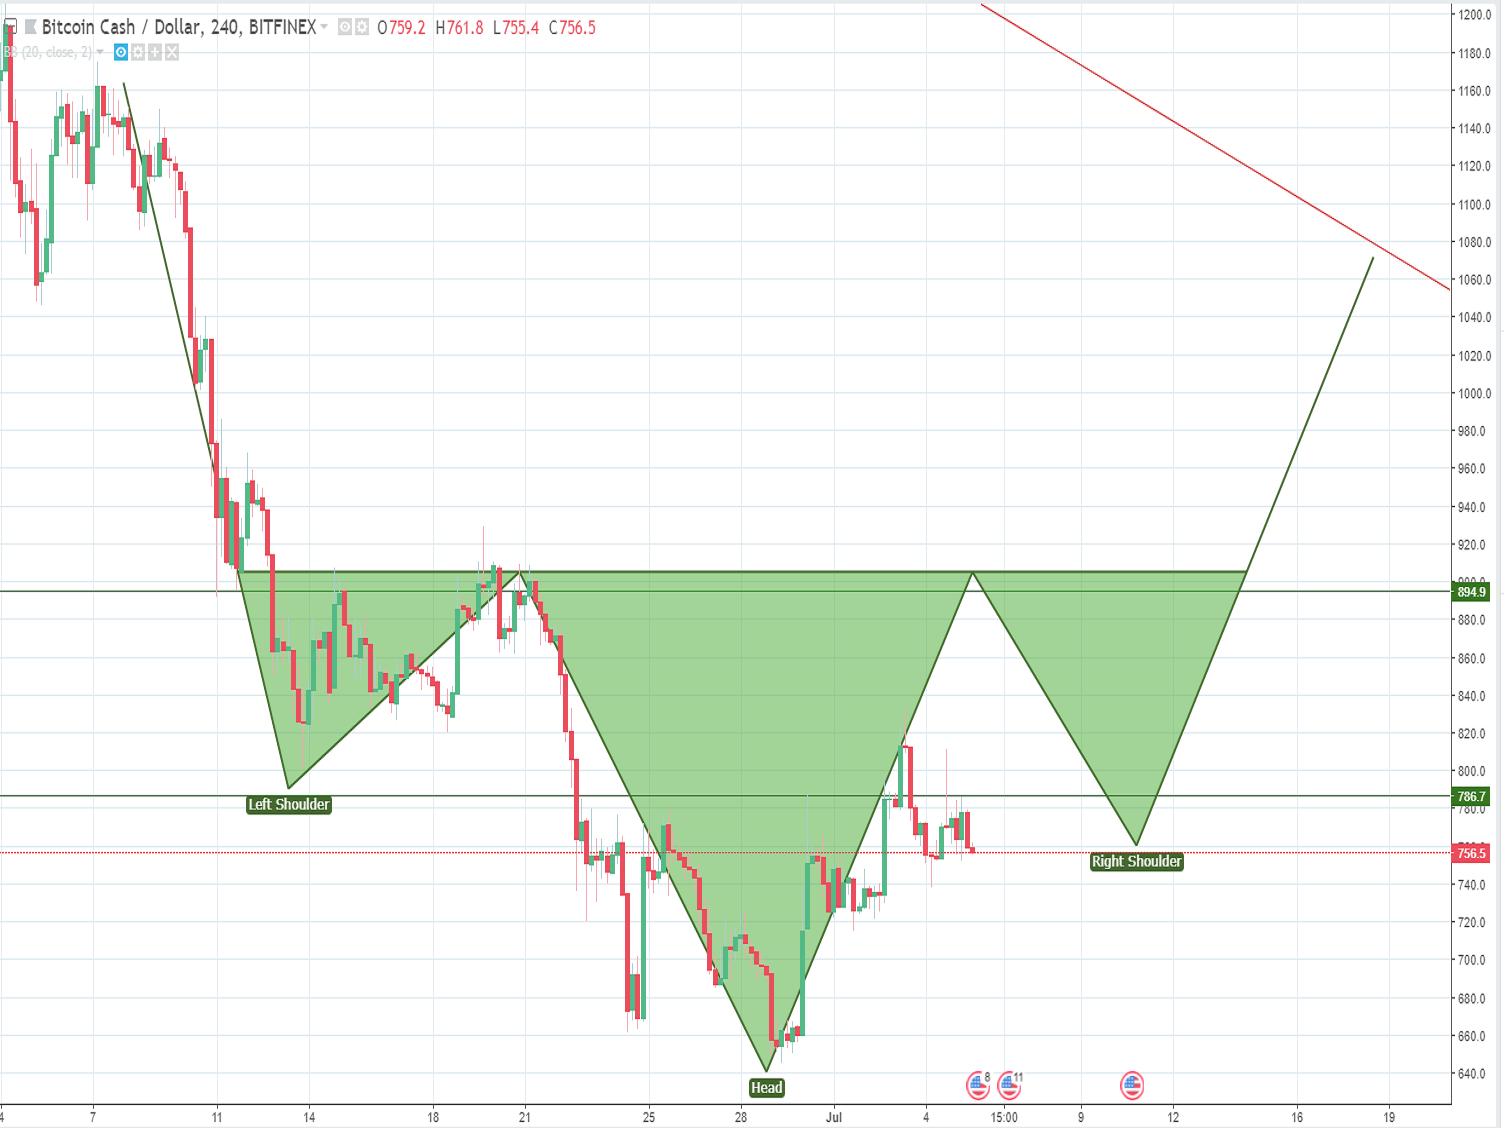 Bitcoin cash price analysis and forecast (July 5th): A bullish trend awaiting